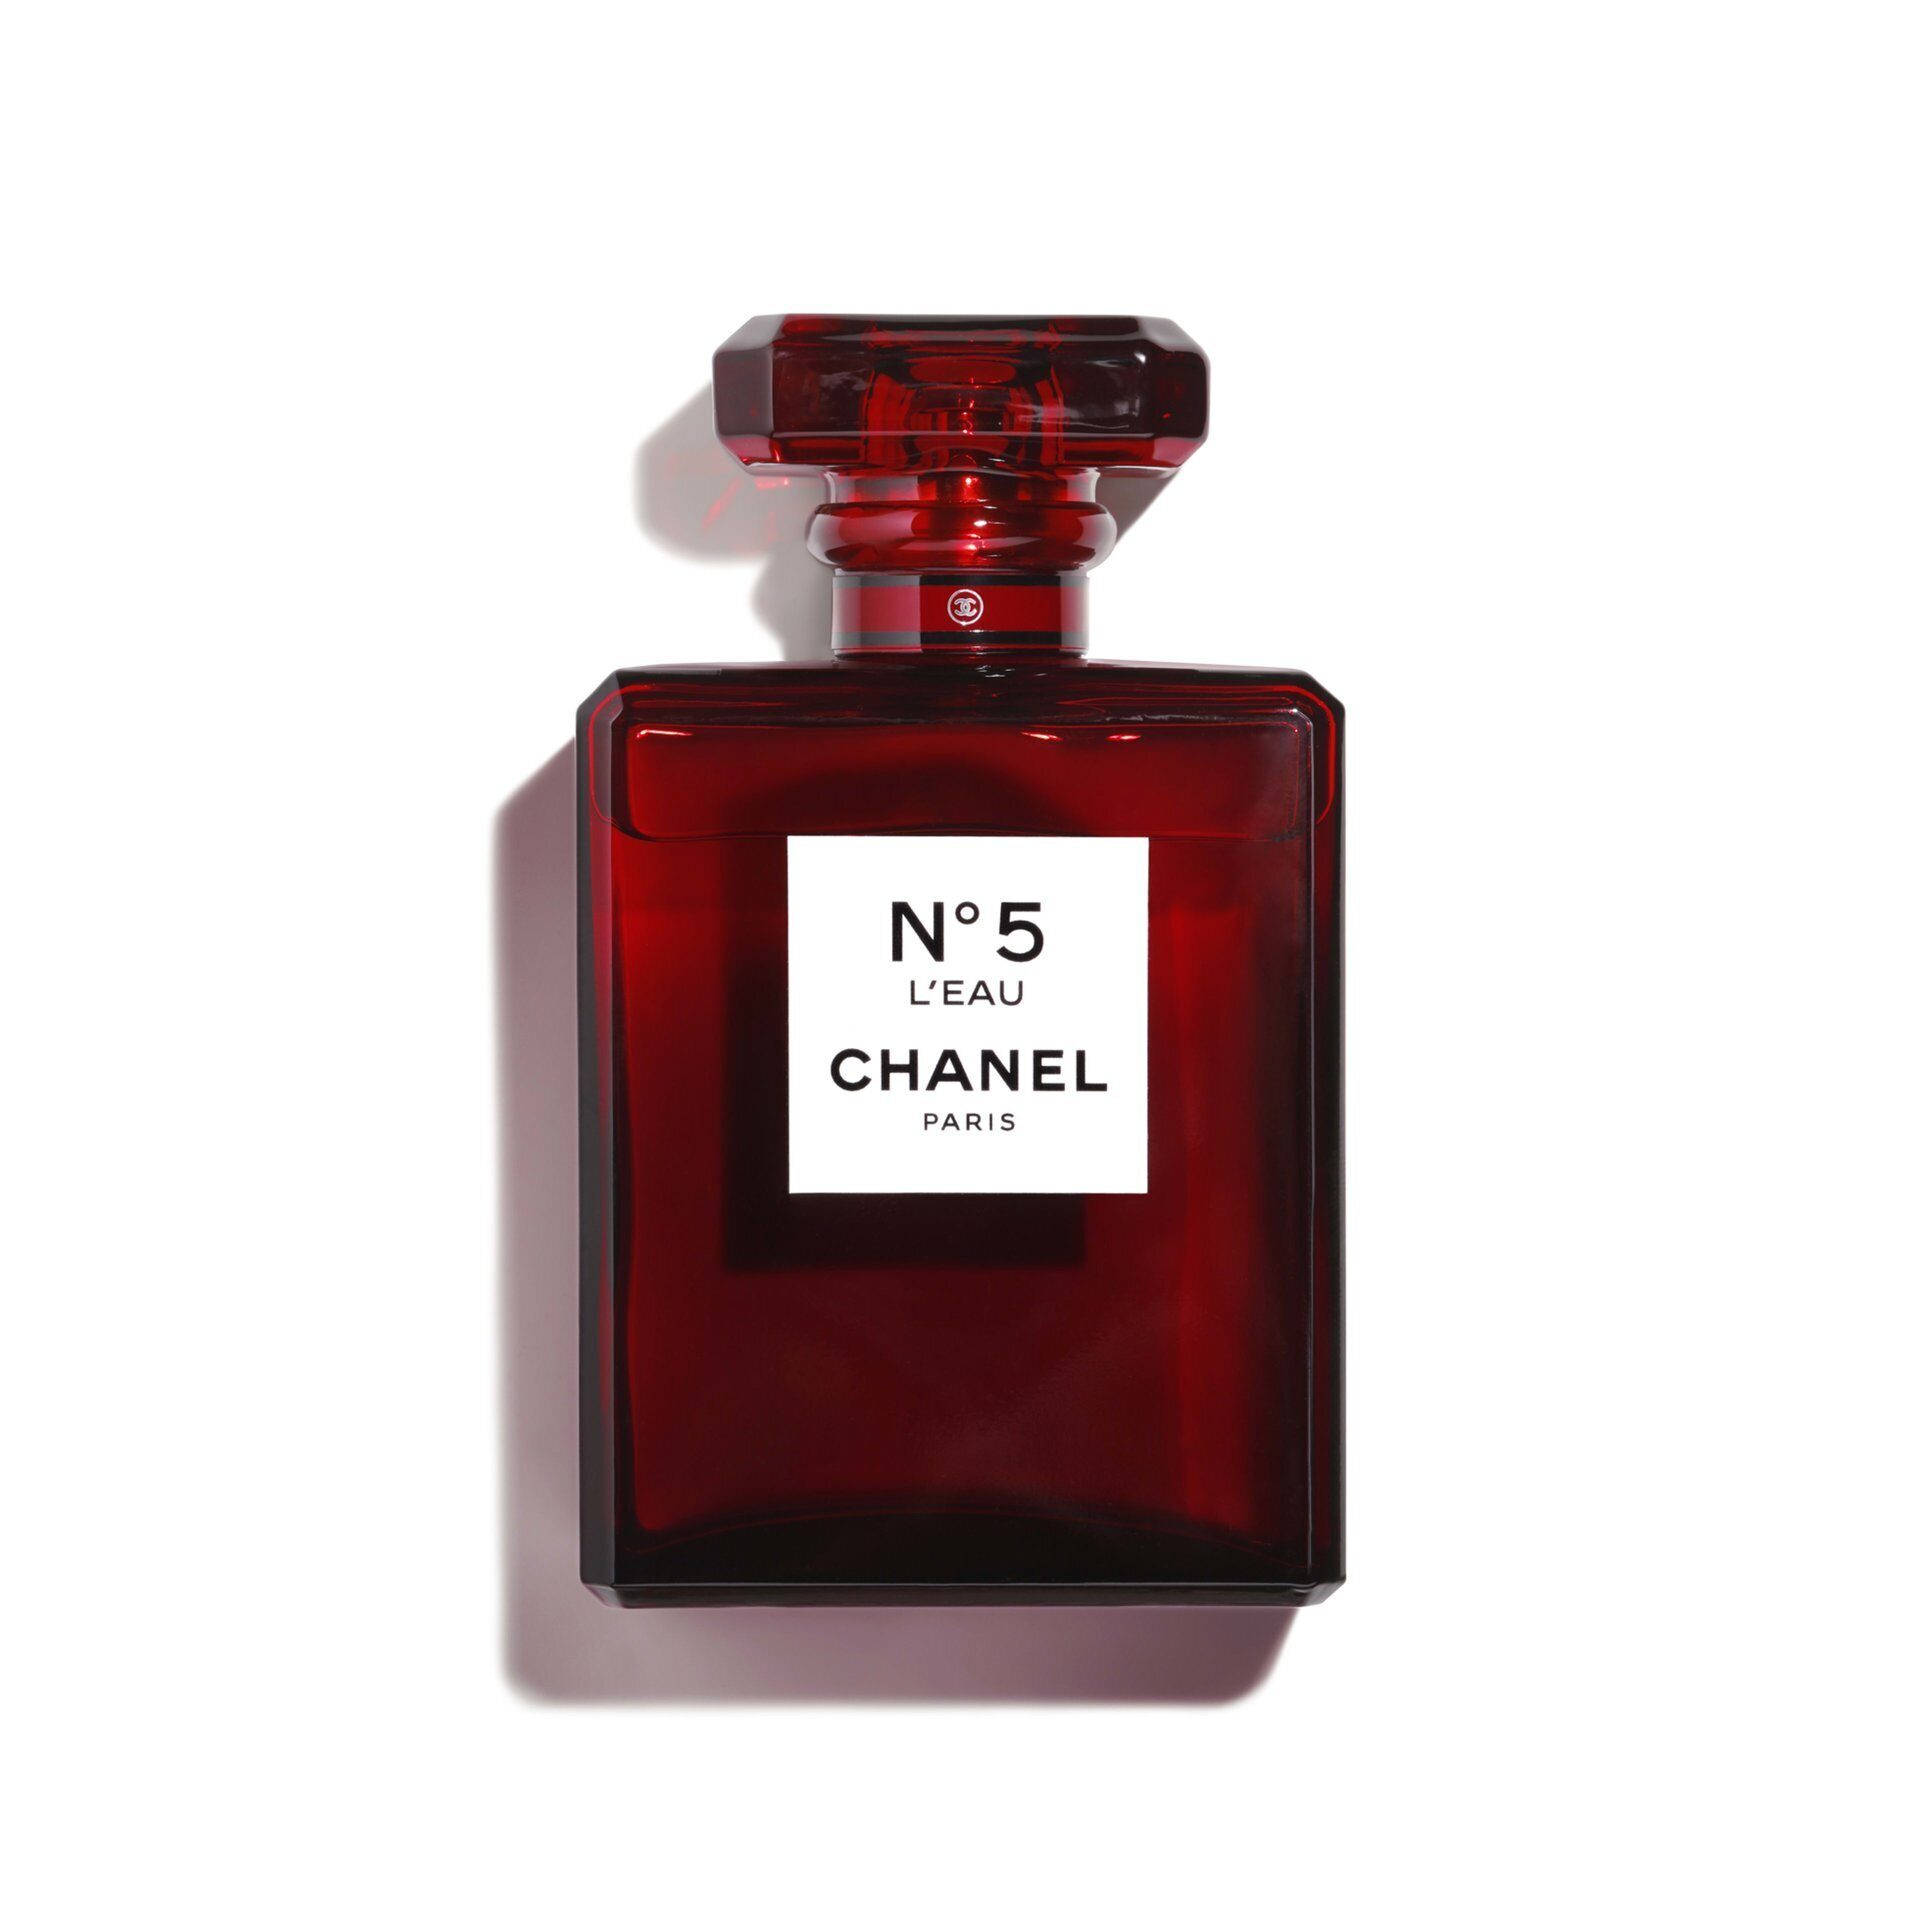 CHANEL № 5 LEAU RED 100 ml.